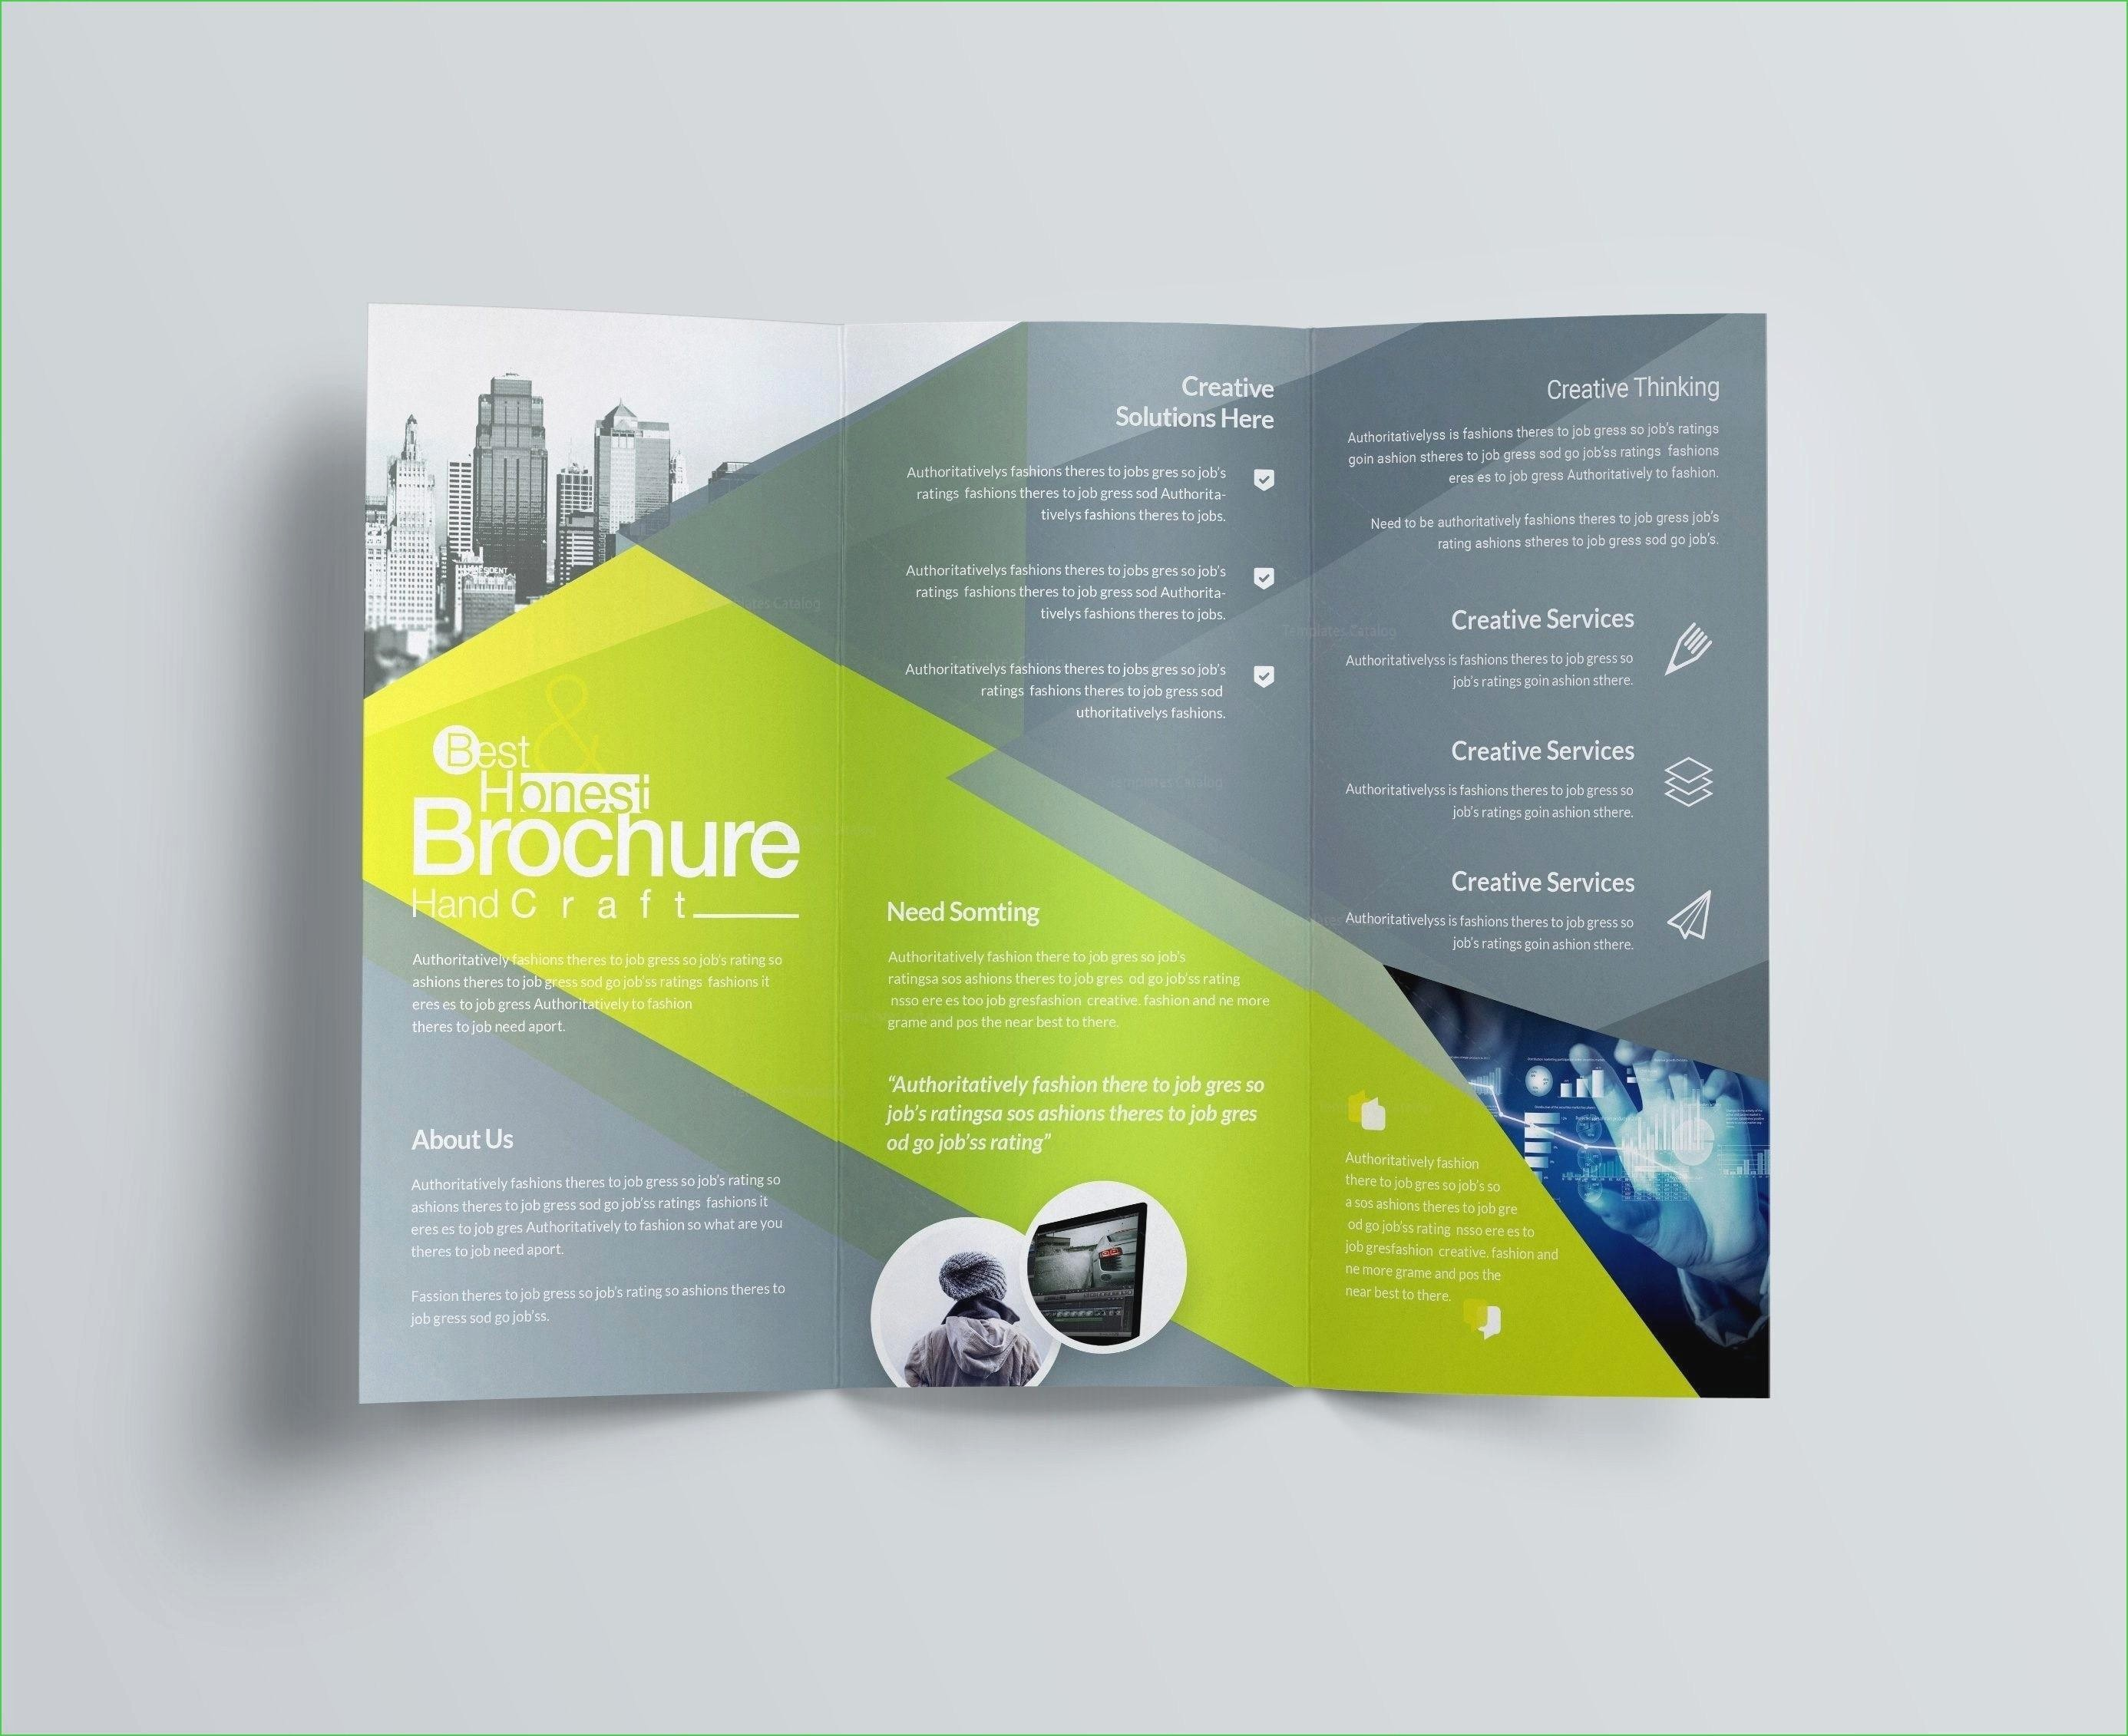 School Brochure Template Free Download Inspirational Patient Education Brochure Templates Inspirational